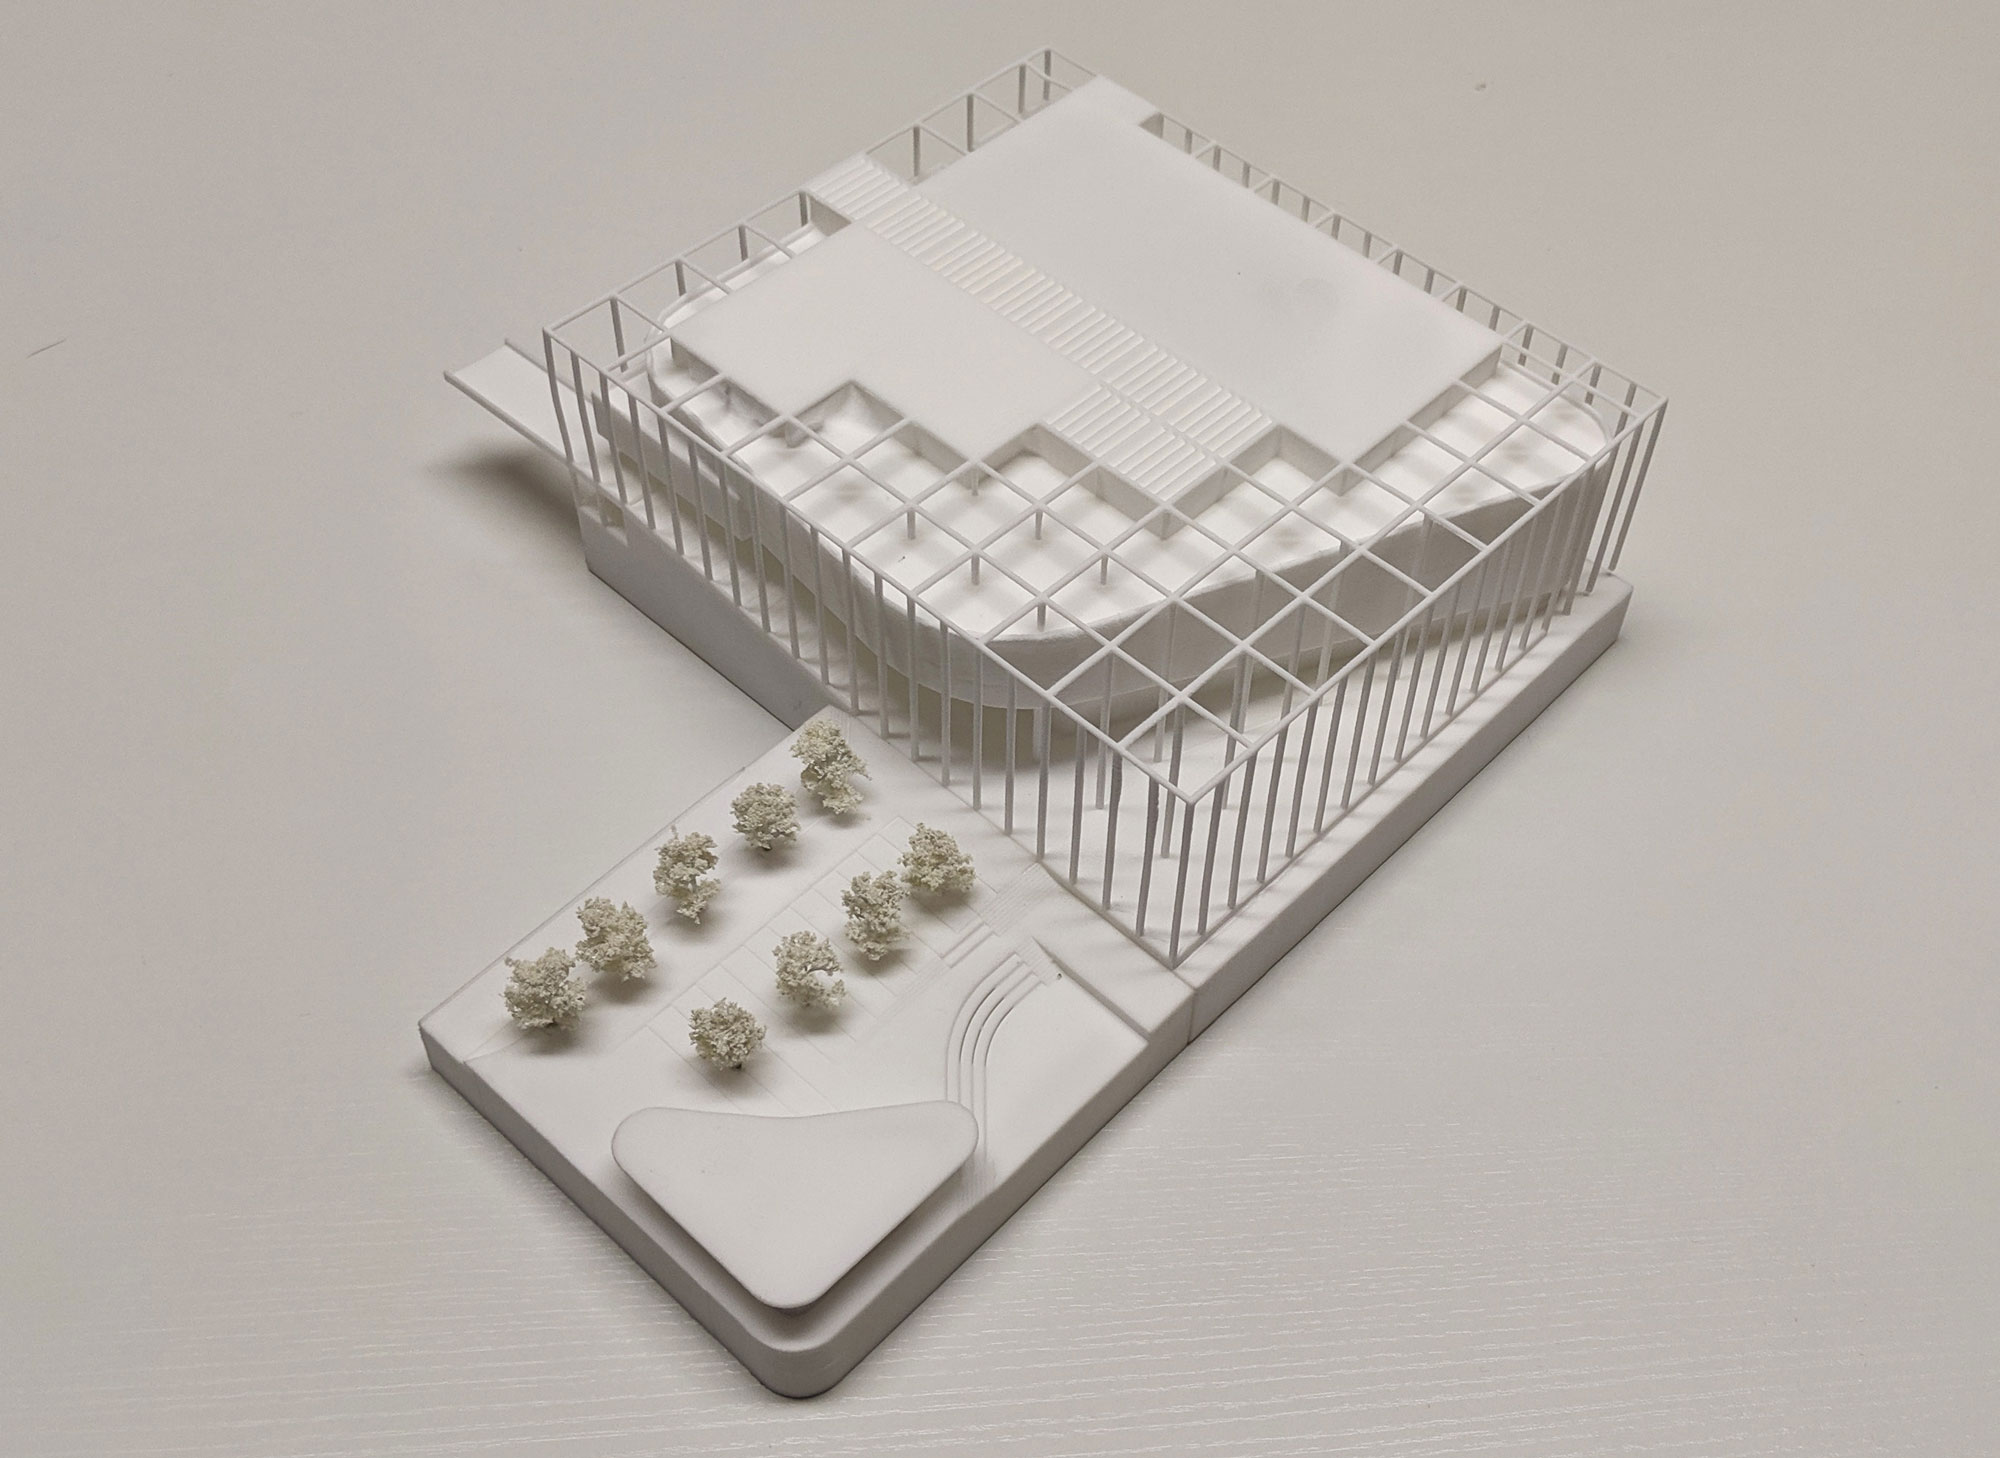 AR_Architecture_National_concert_hall_Sketches&Plans_001